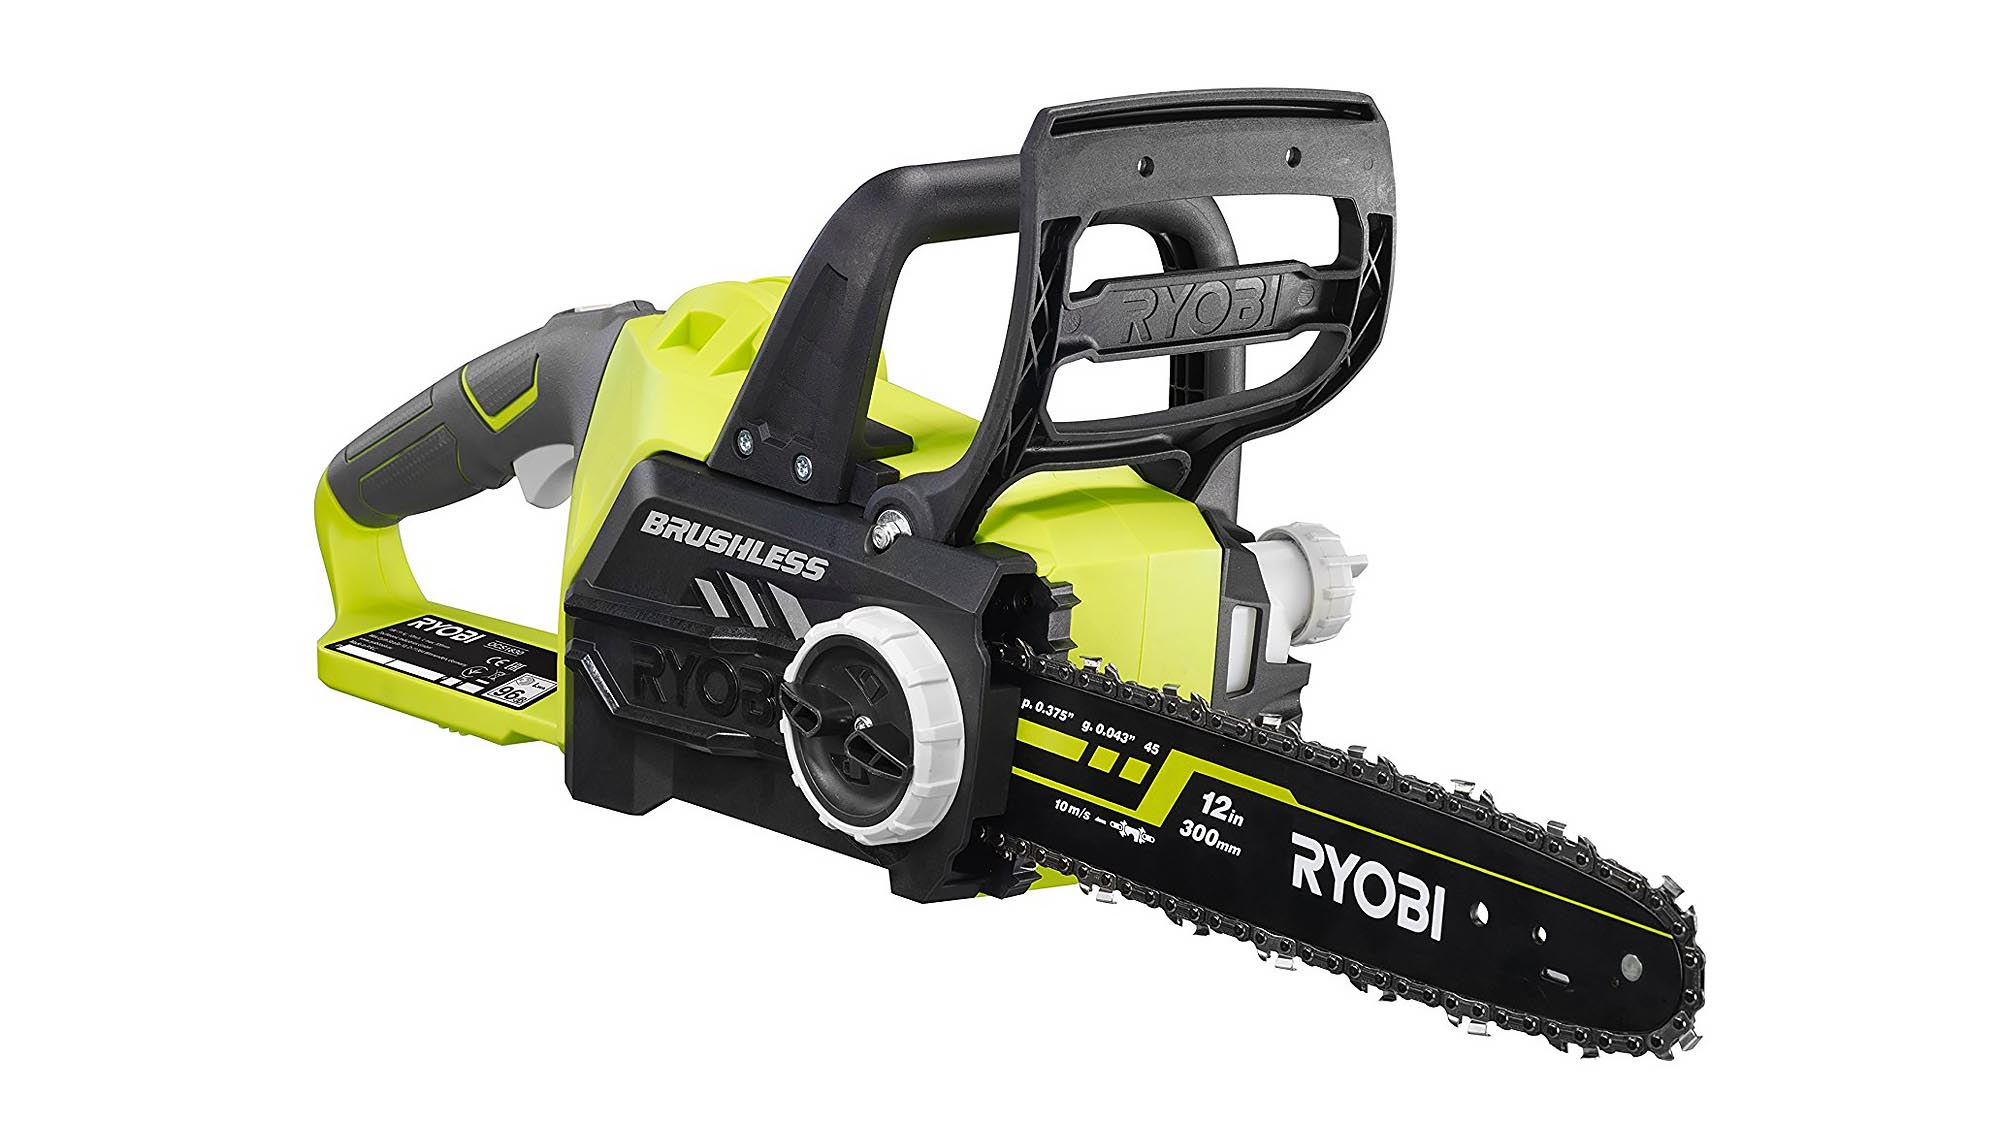 Best chainsaws make light work of heavy pruning jobs from 50 ryobis chainsaw looks cheap at 134 but that price doesnt include a battery if youre invested in ryobis one range of tools which includes everything keyboard keysfo Images